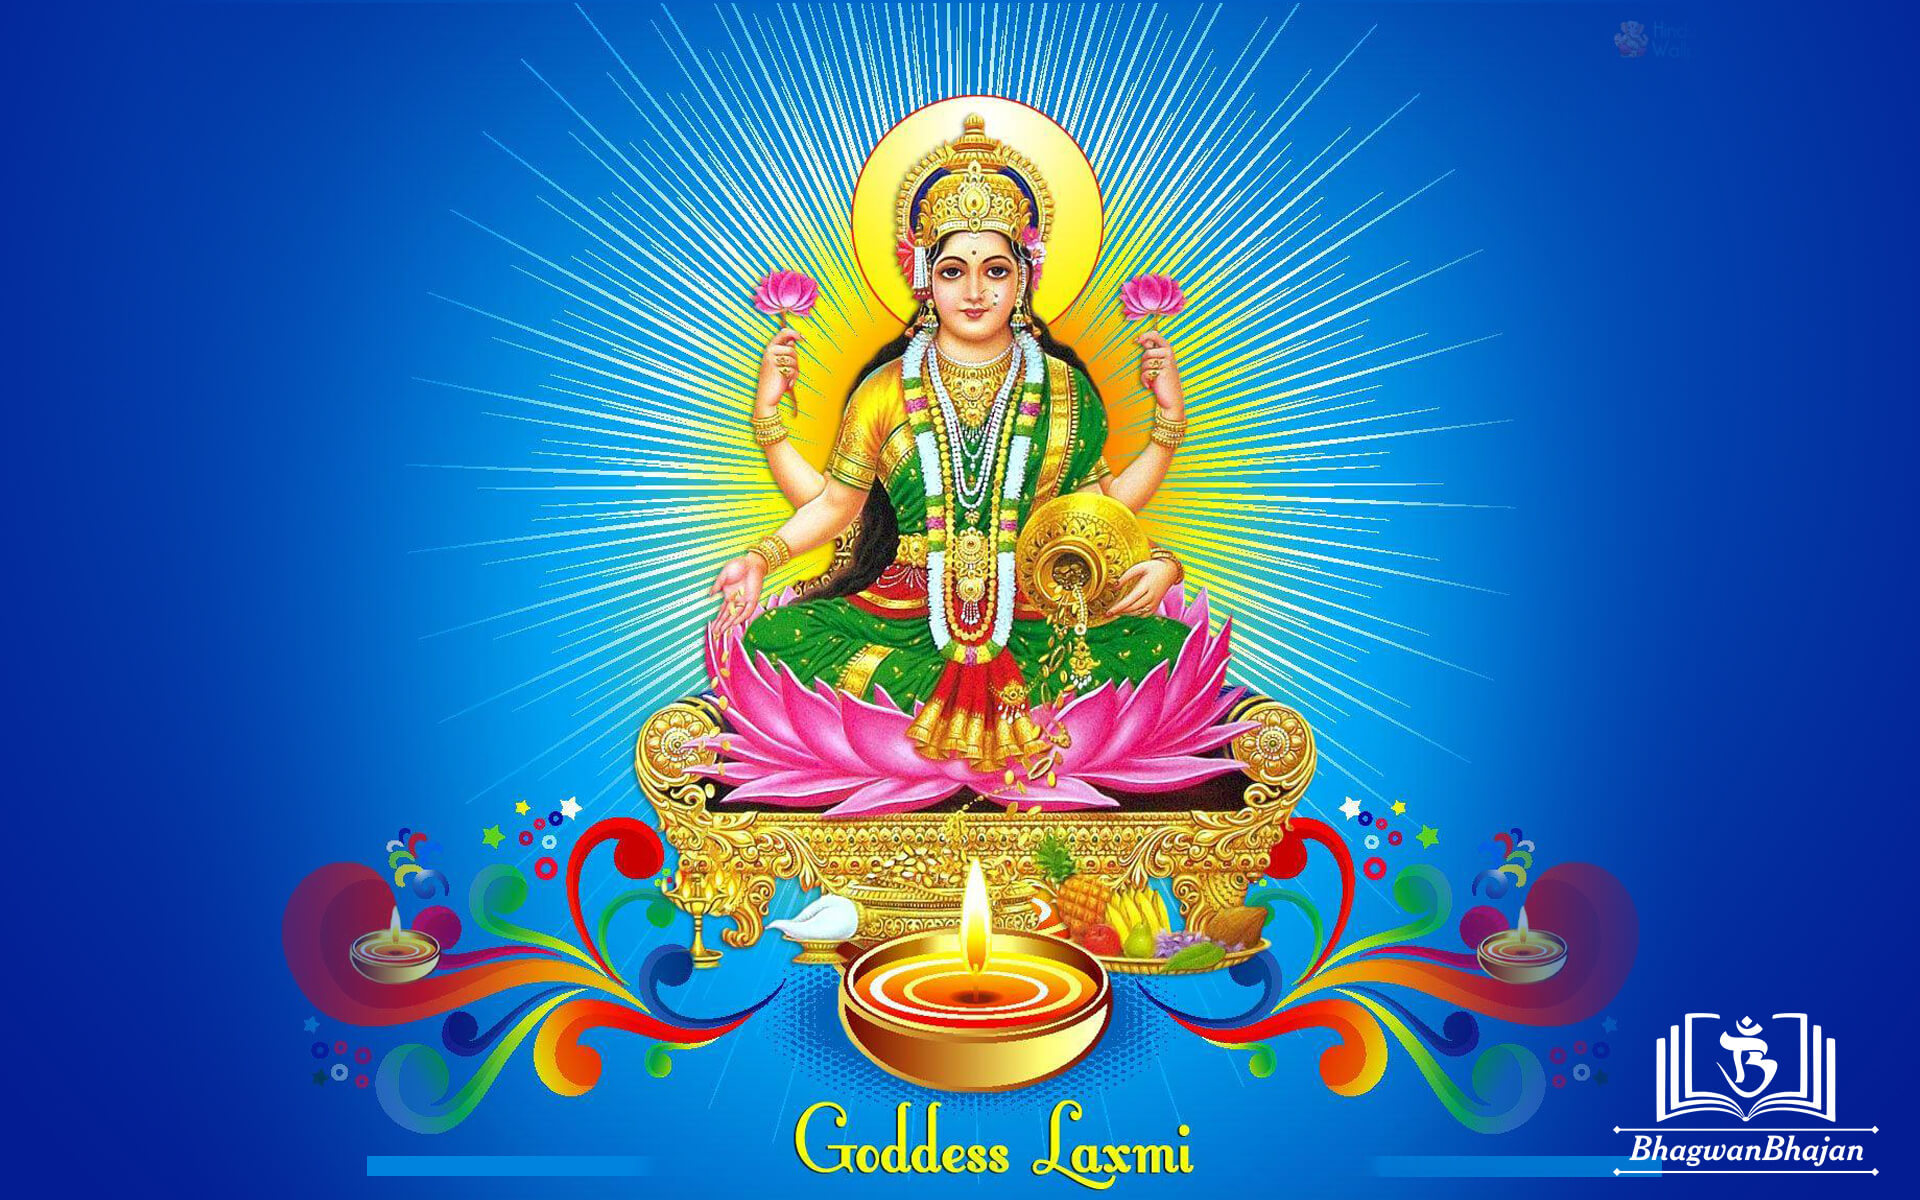 goddess laxmi best new hd wallpaper